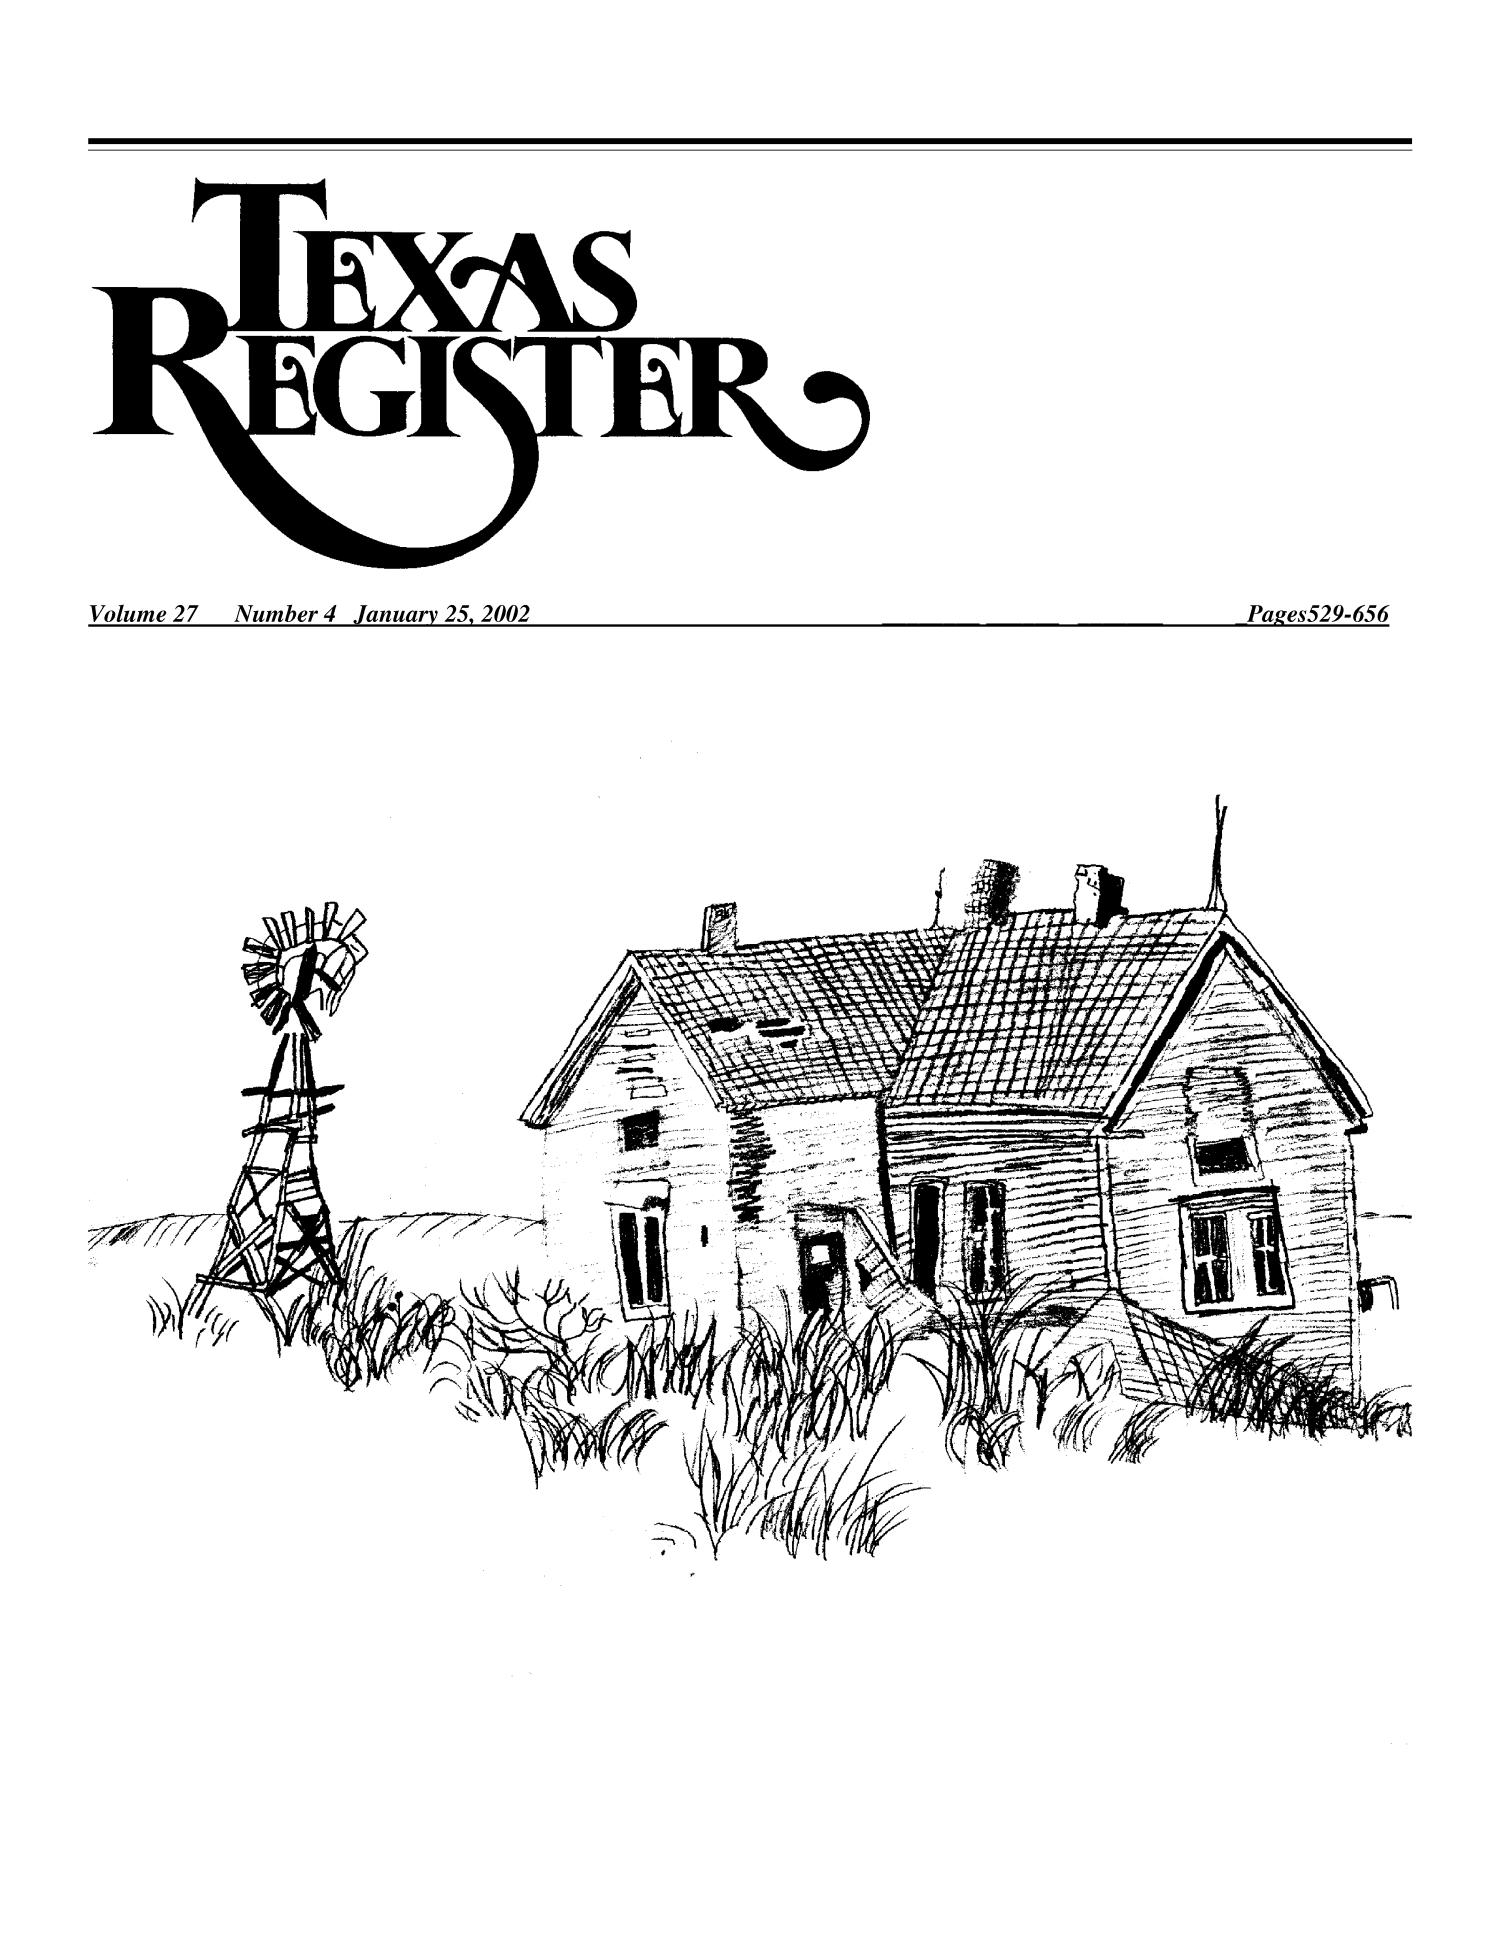 Texas Register, Volume 27, Number 4, Pages 529-656, January 25, 2002                                                                                                      529